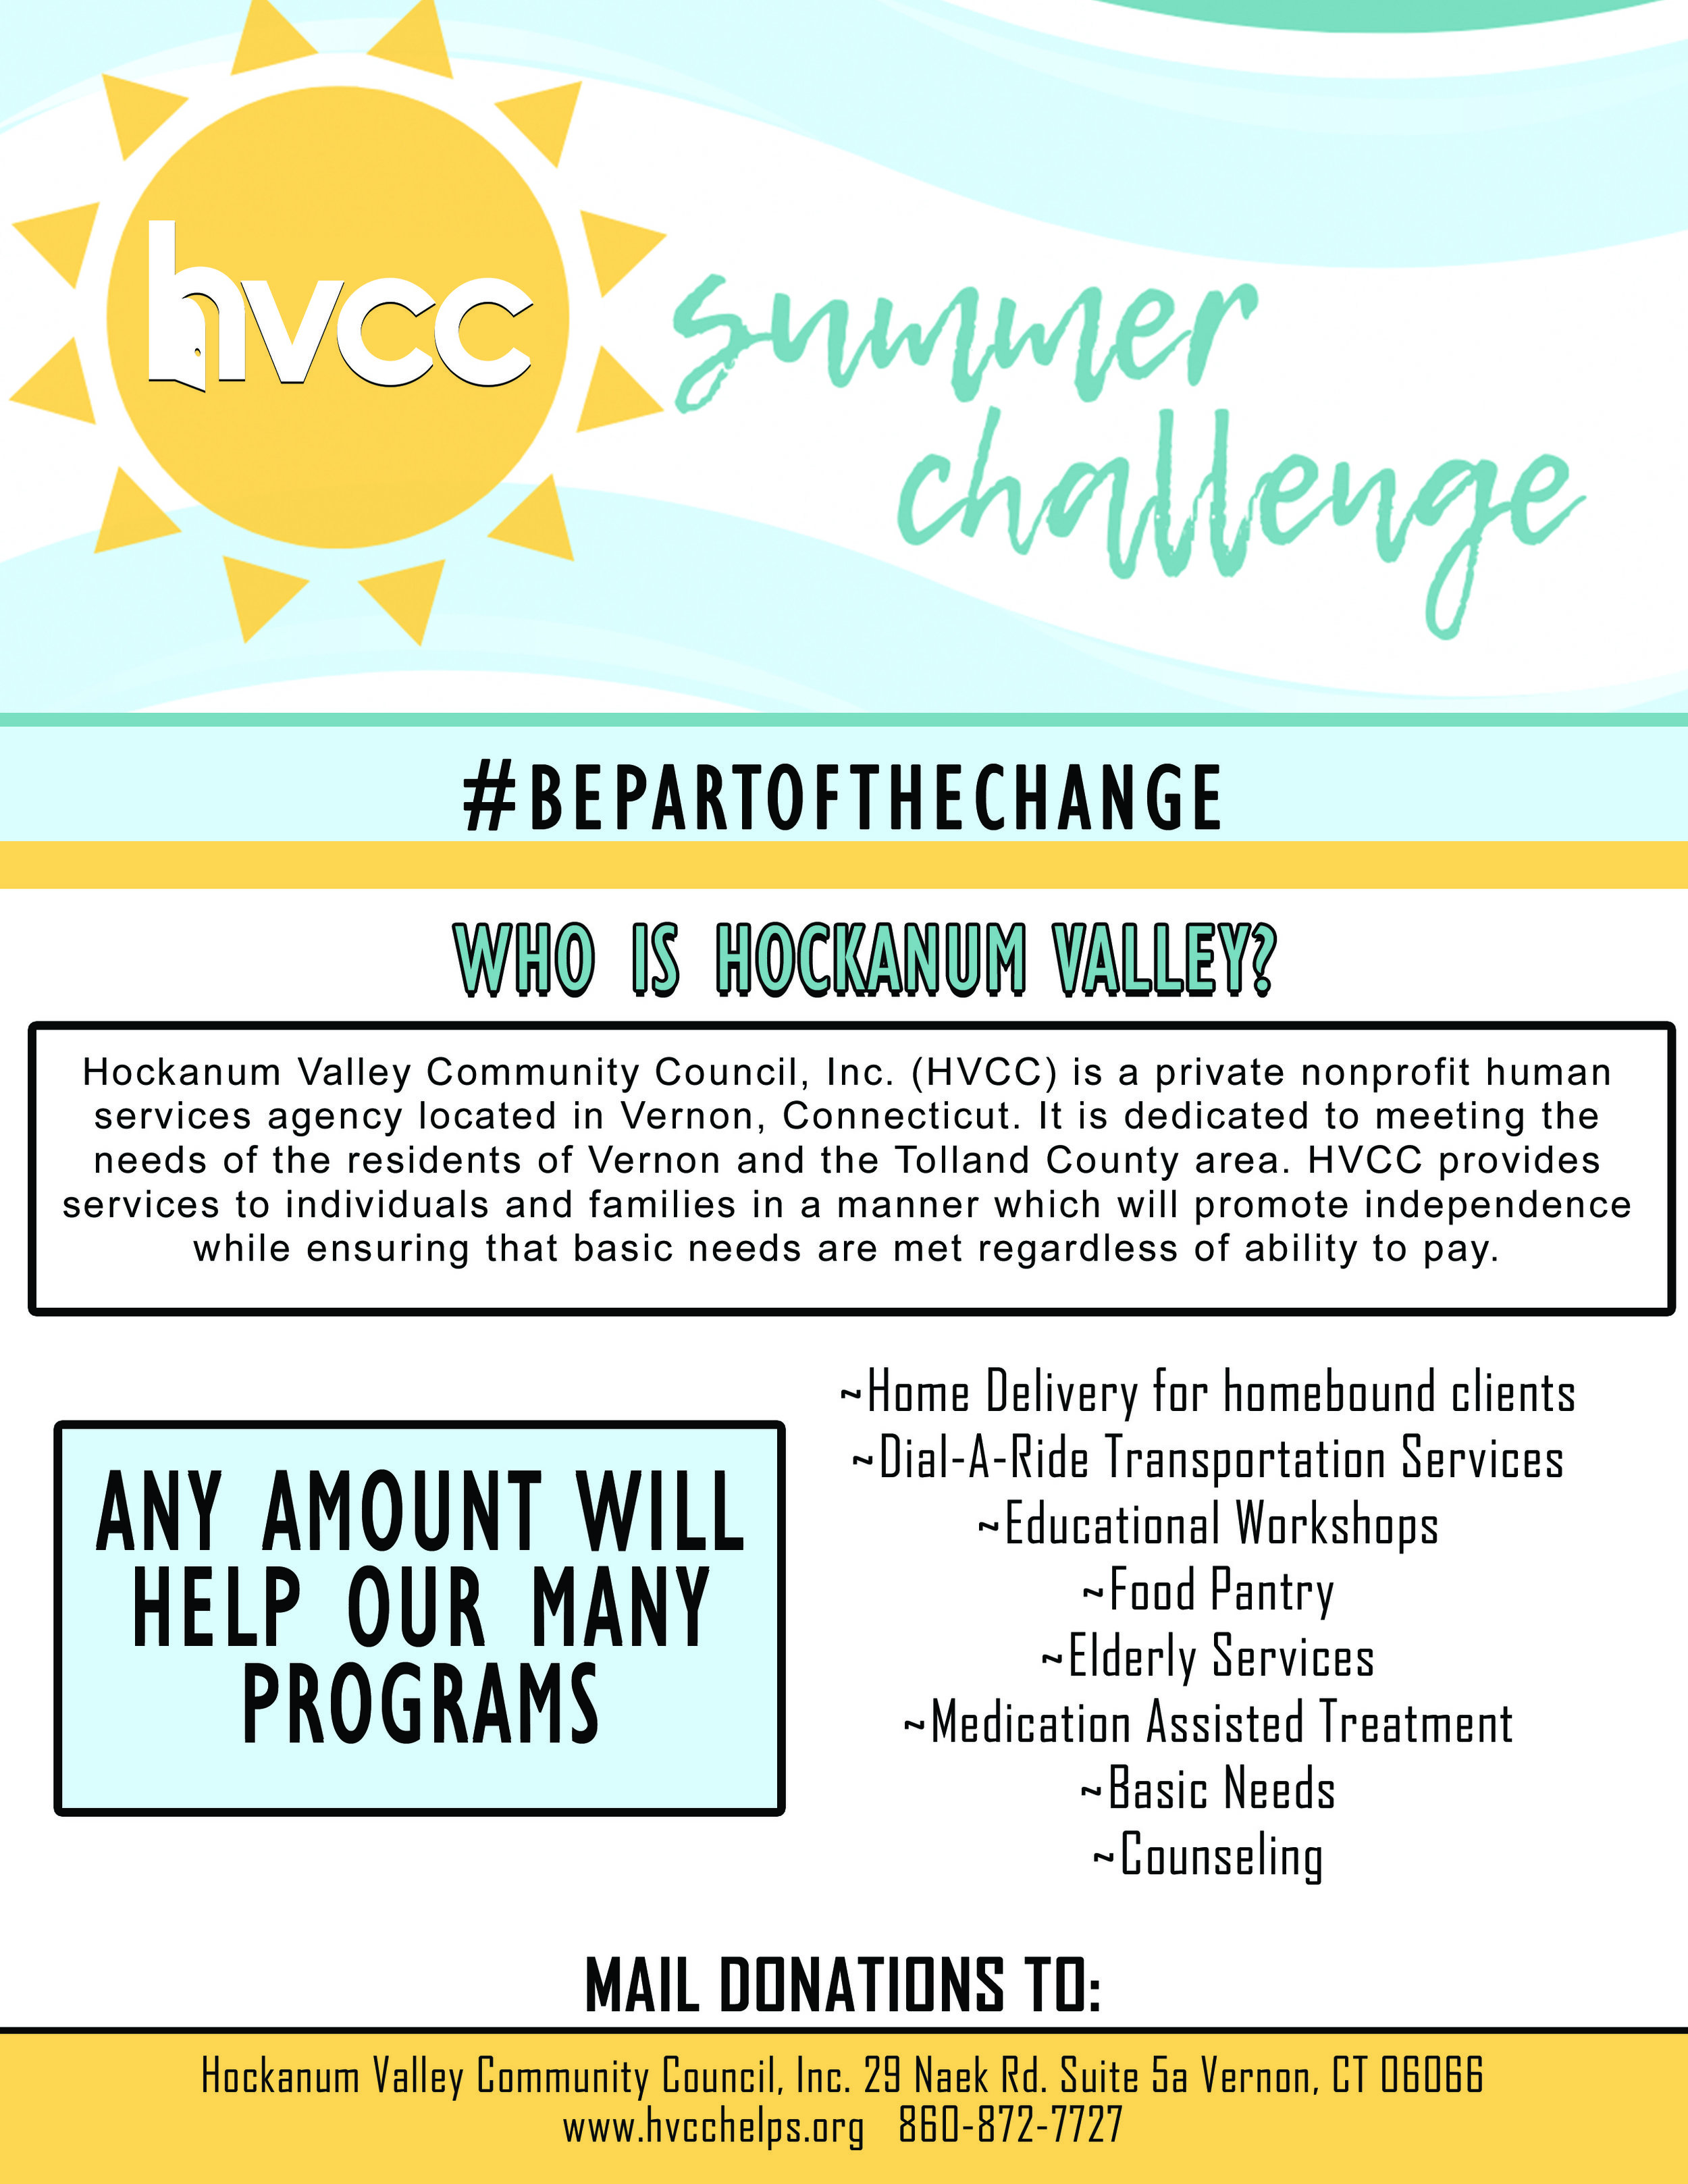 summer challeneg flyer option 3.jpg